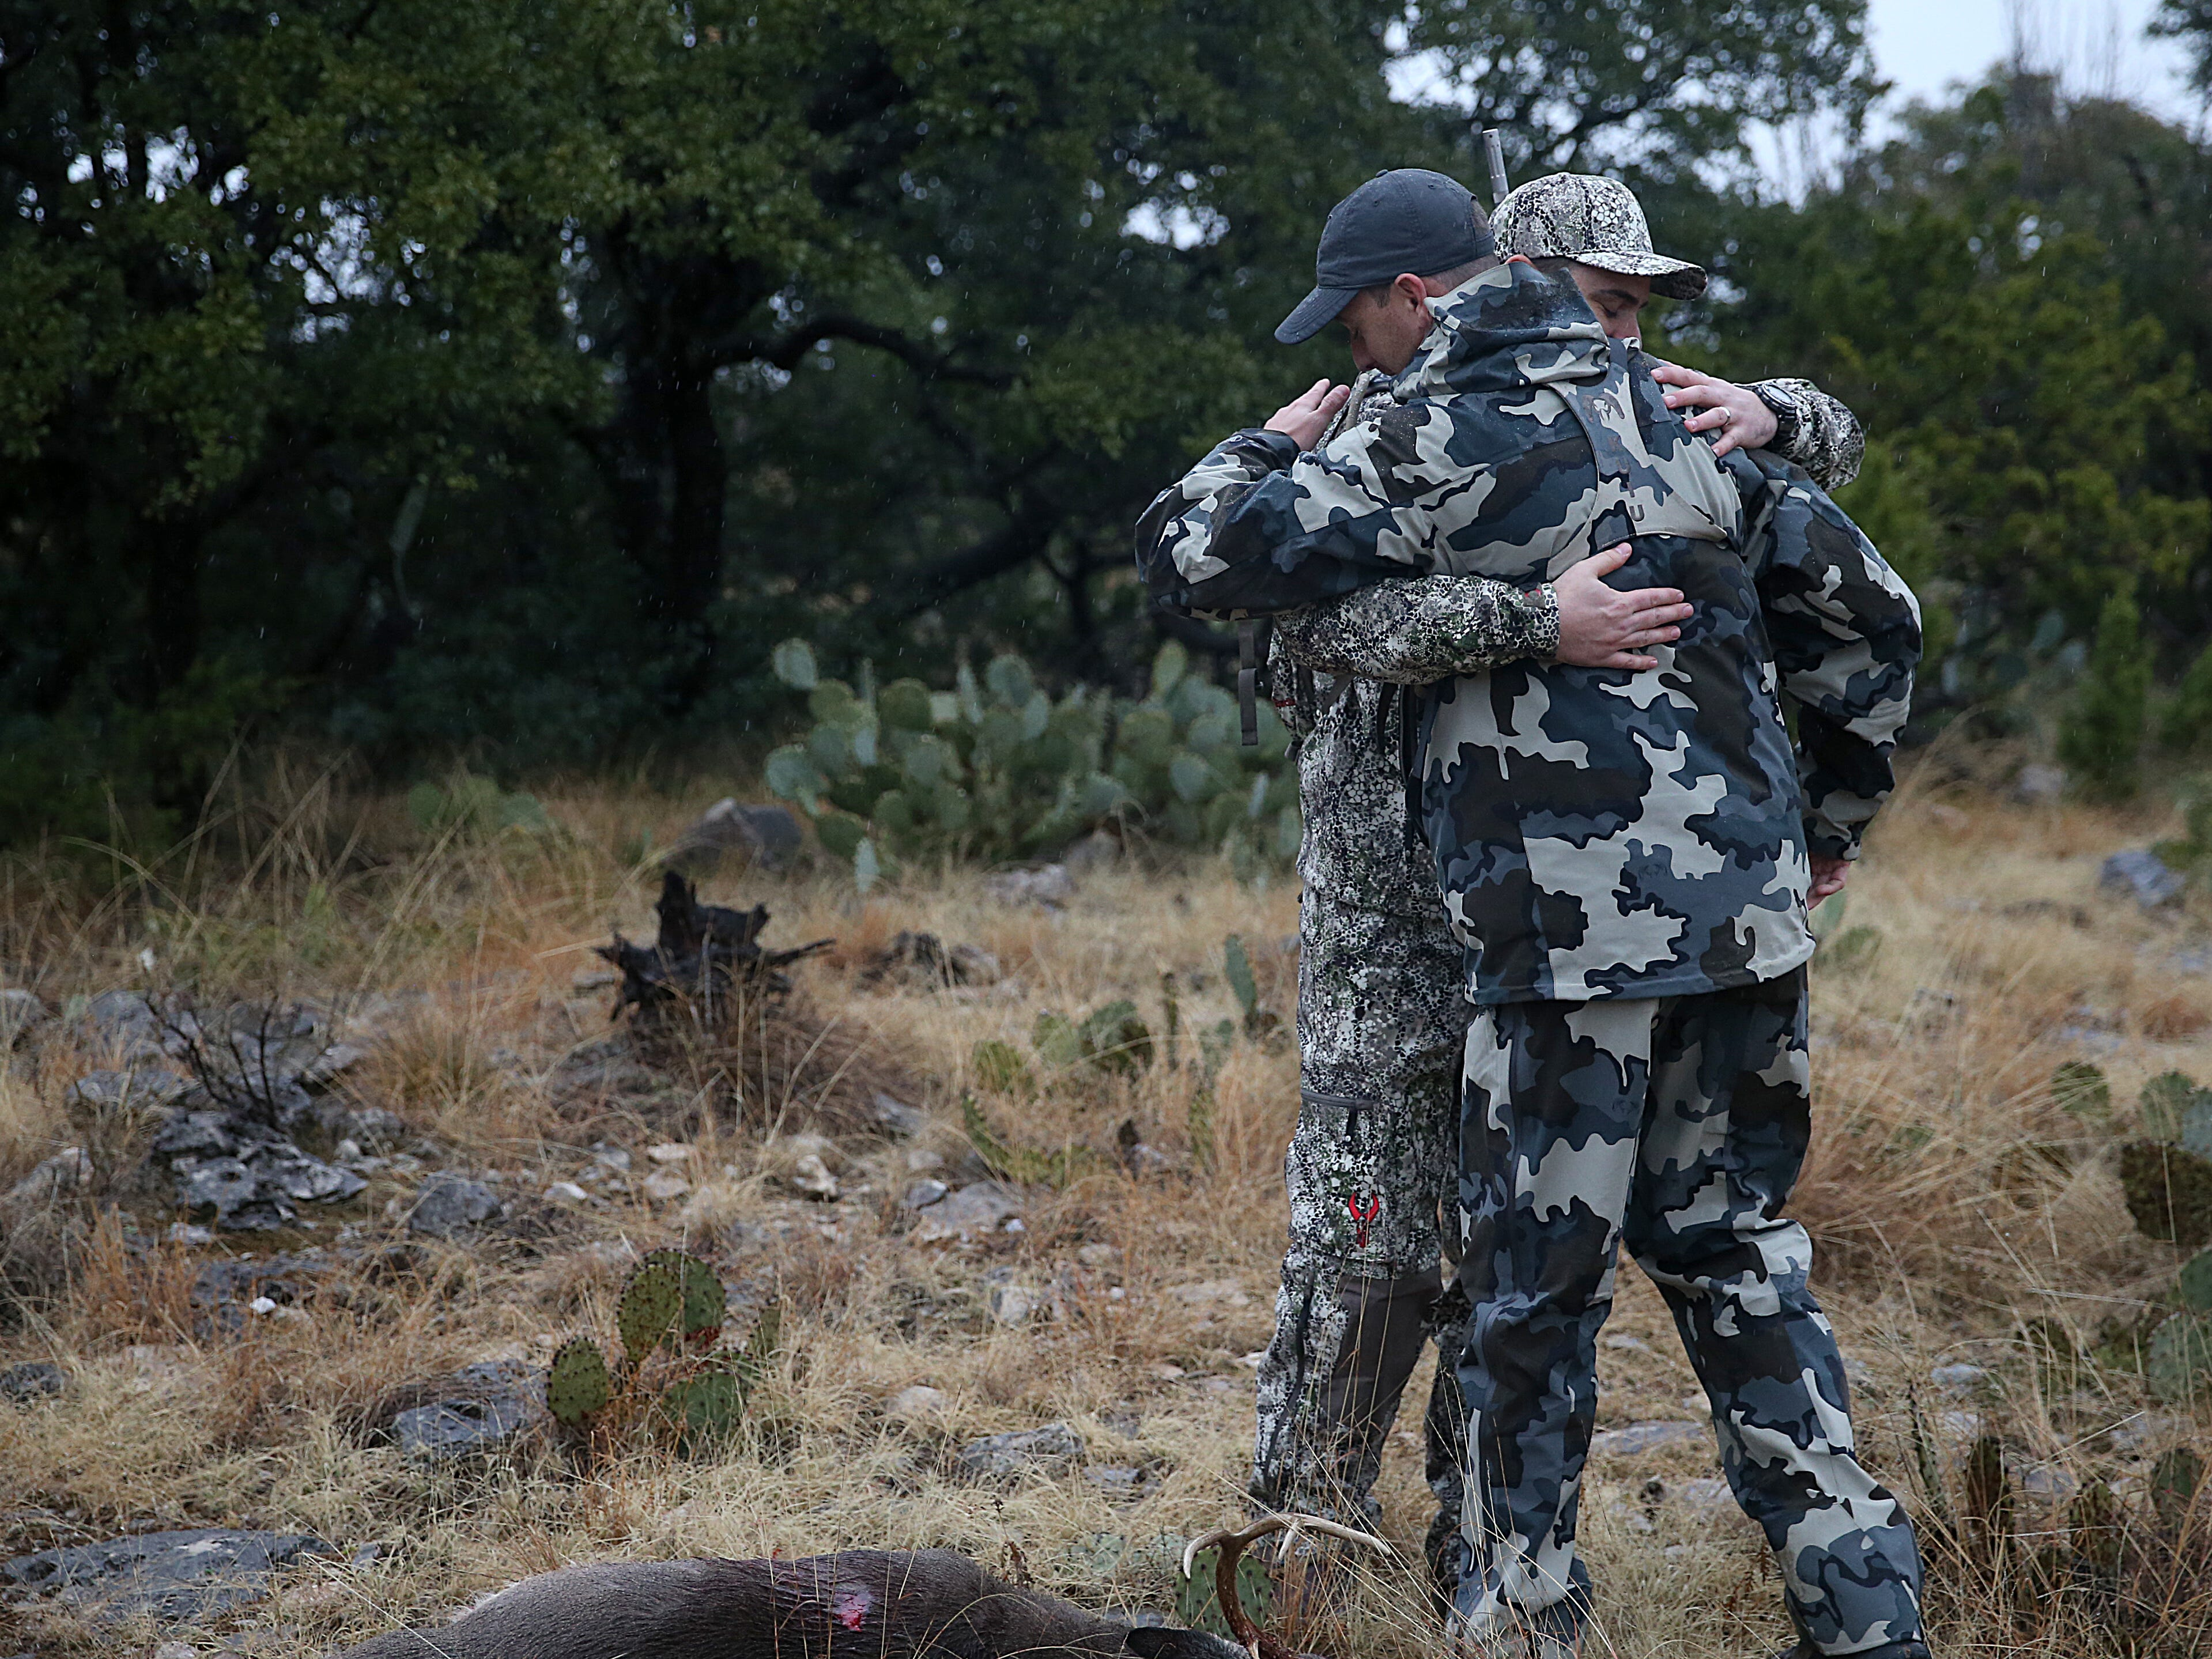 Joseph Lewis and his guide Ryan Dupriest embrace after Lewis shot his first deer during the annual deer hunt in Christoval Friday, Dec. 7, 2018 sponsored by San Angelo Support for Veterans and Lone Star Warriors Outdoors.The hunt included 18 combat injured veterans from across the nation.